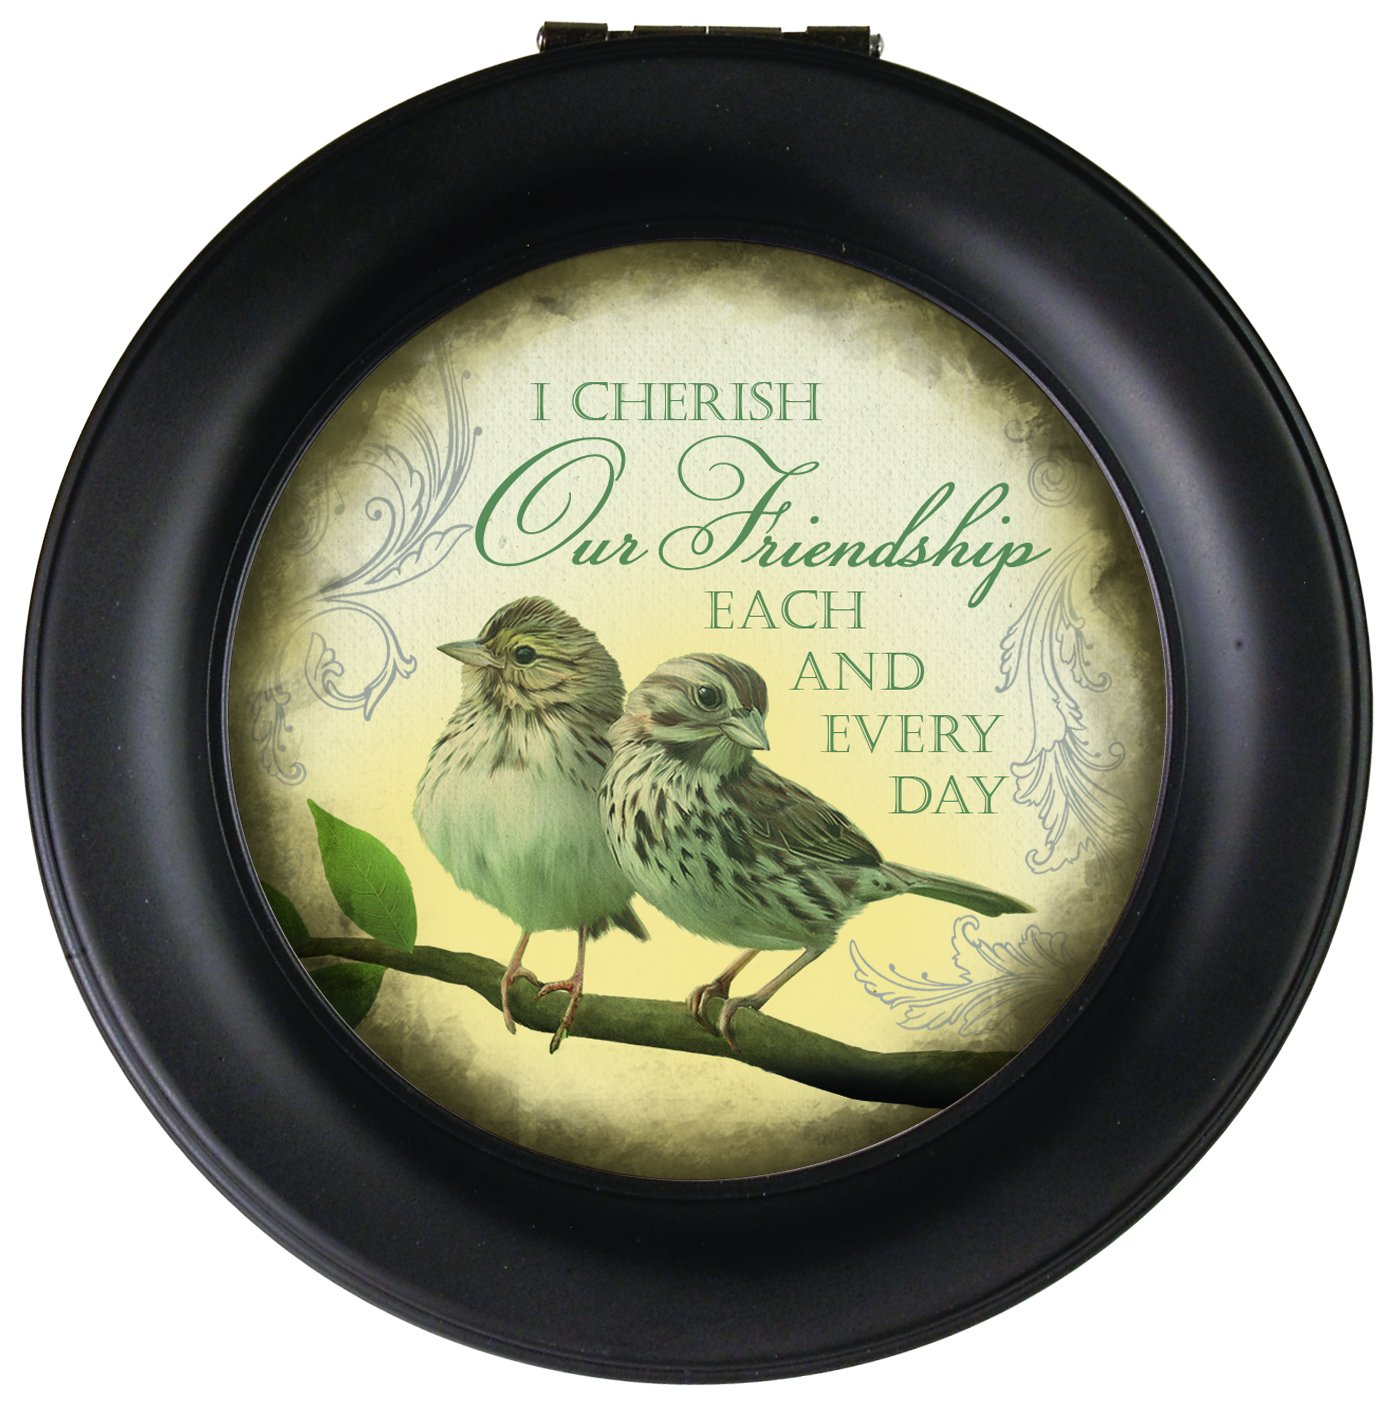 Carson Home Accents Friendship Every Day Round Music Box Playing Swan Lake